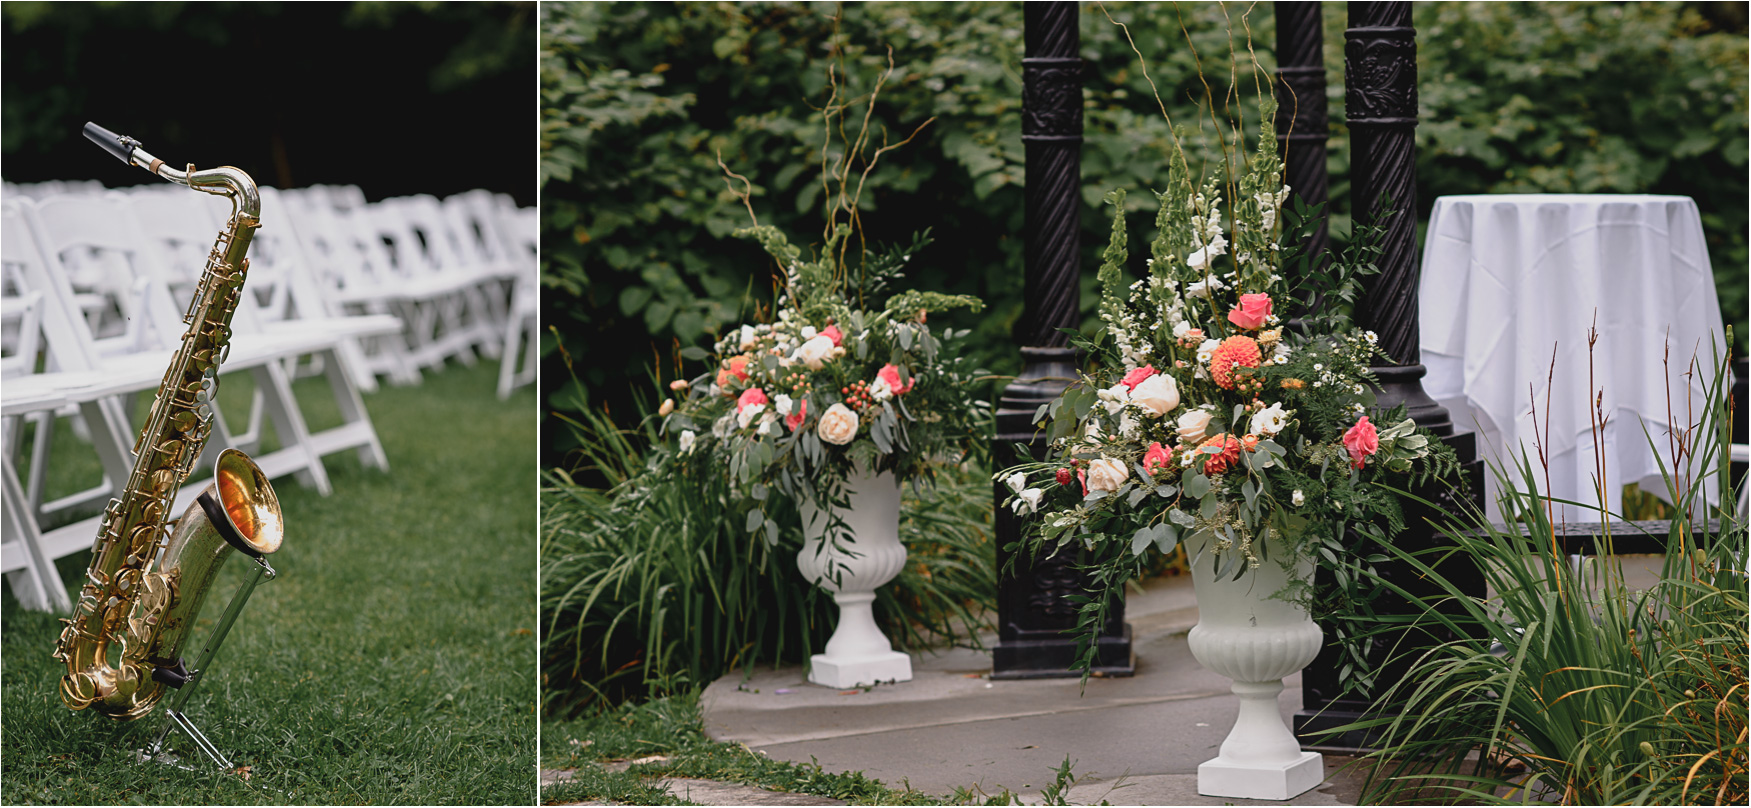 Details by the gazebo at the Elm Hurst Inn outdoor Wedding Ceremony